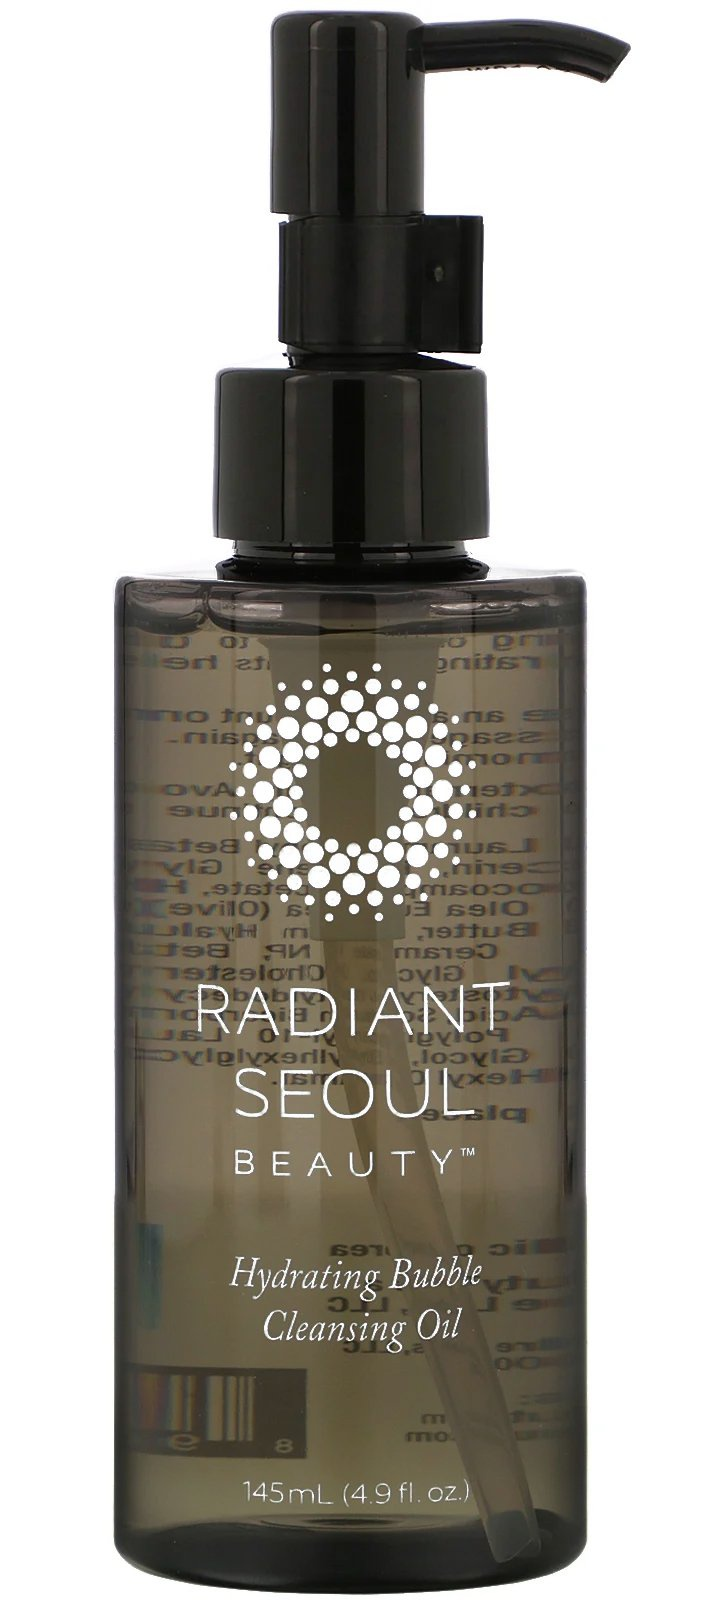 Radiant Seoul Hydrating Bubble Cleansing Oil